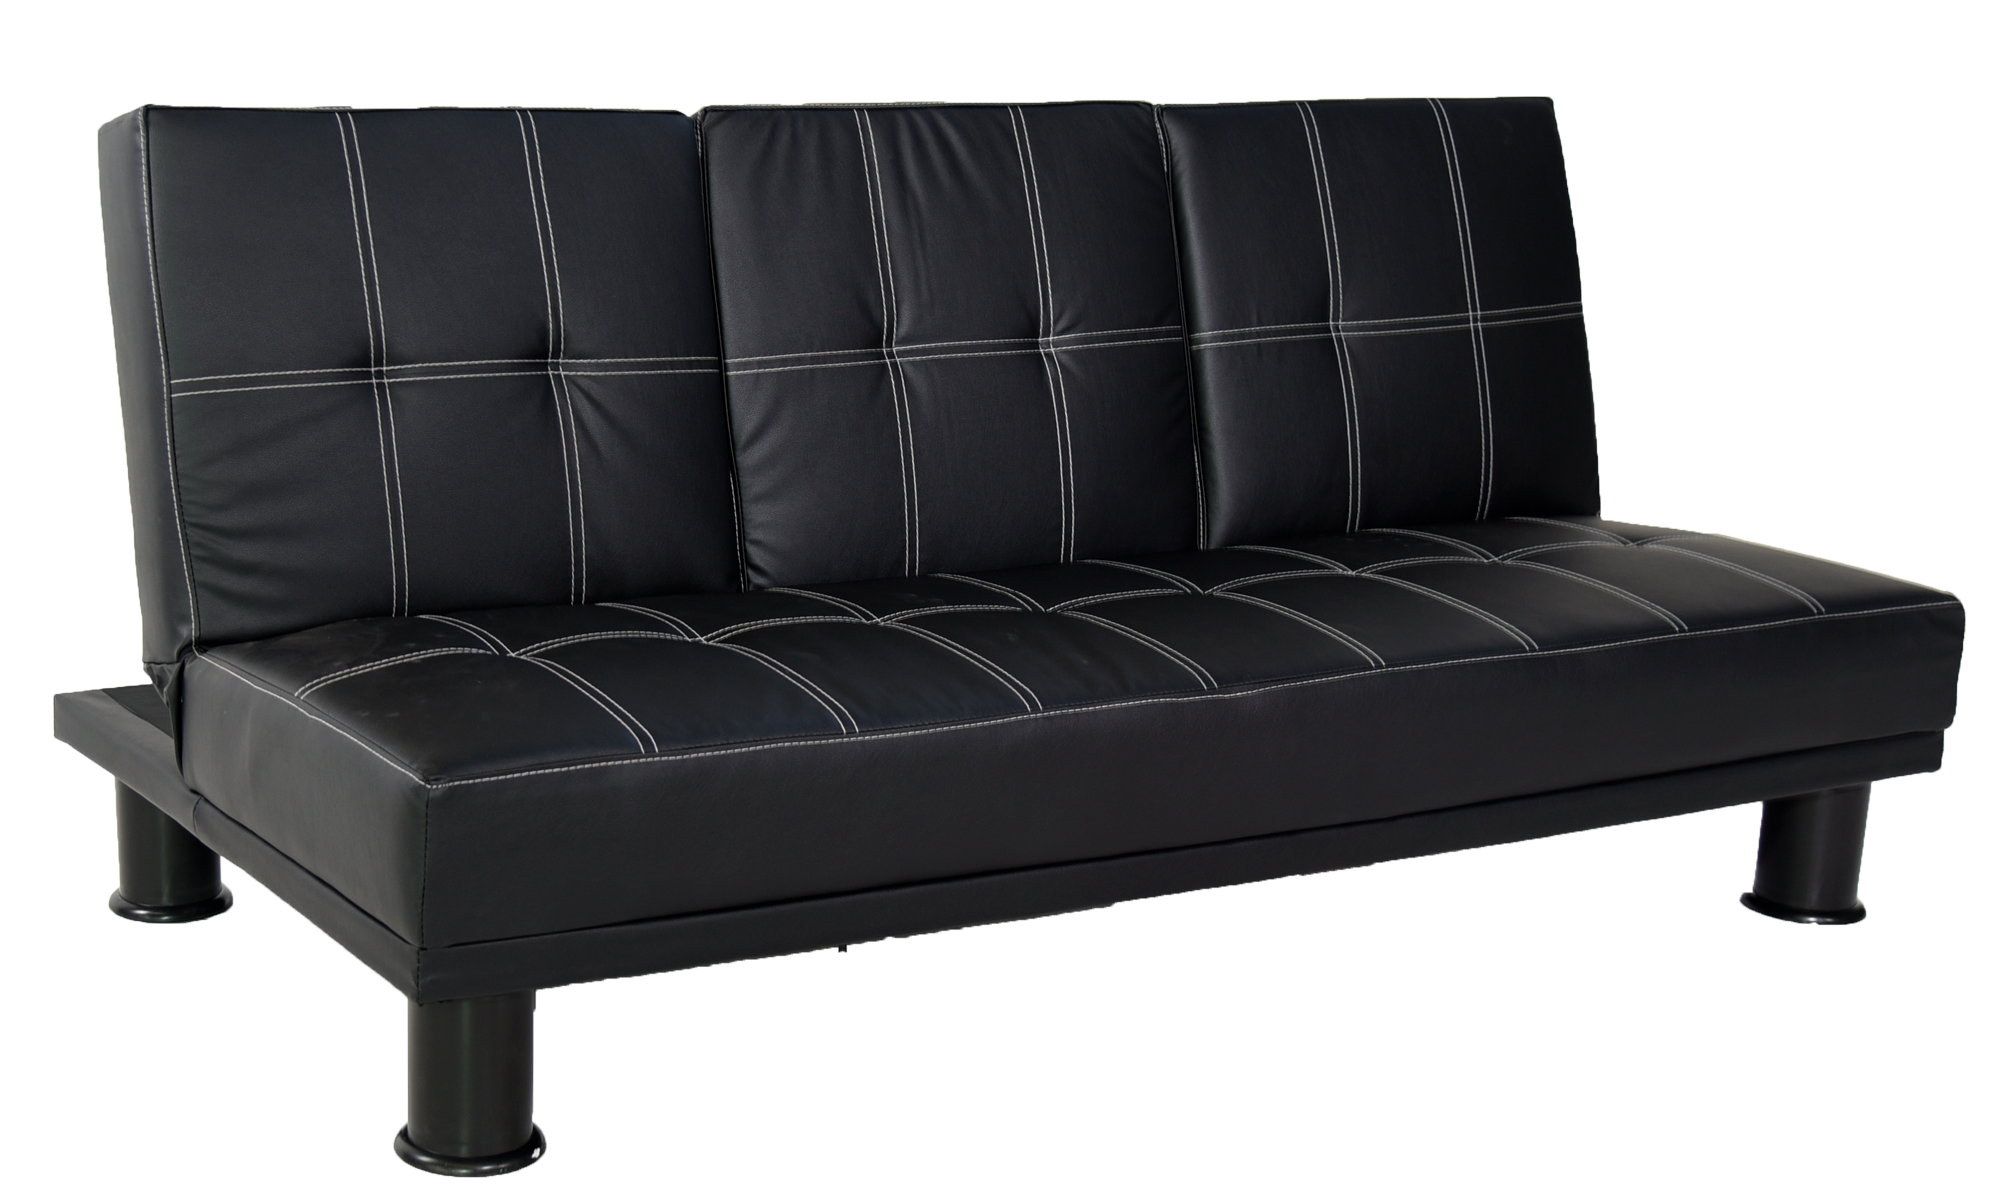 Signature Sleeper Couch ...